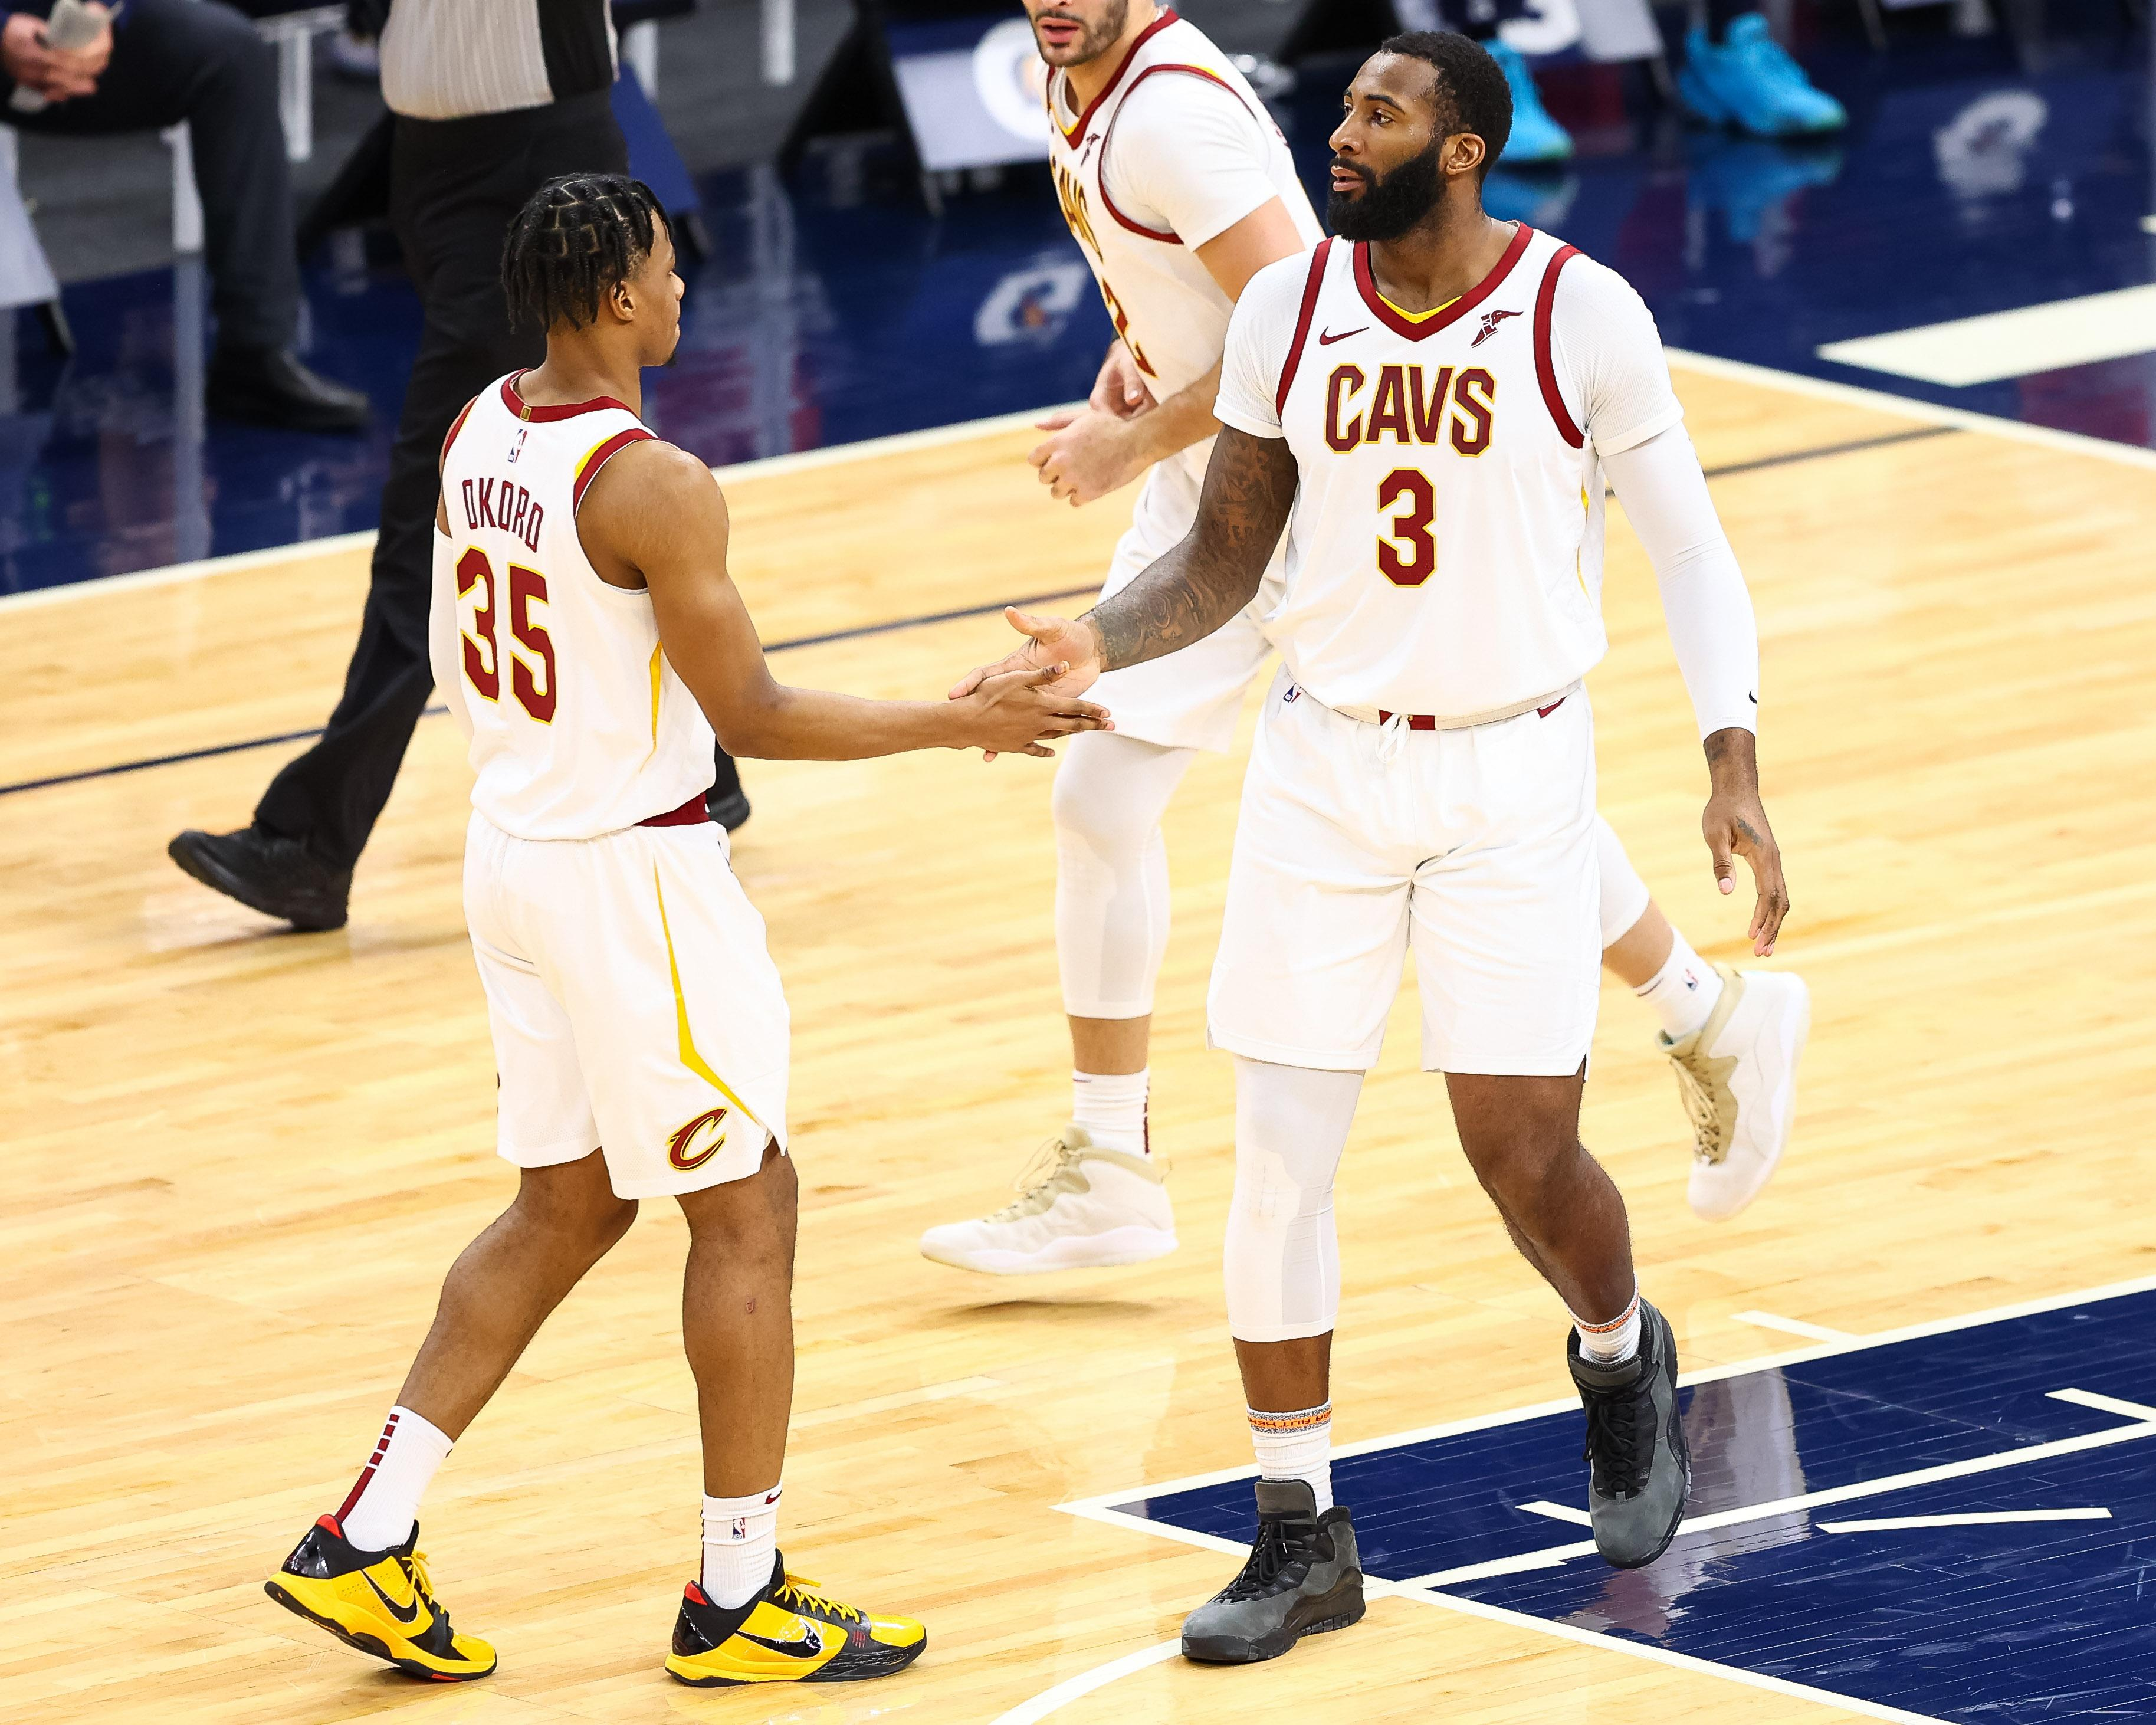 Andre Drummond #3 and Isaac Okoro #35 of the Cleveland Cavaliers